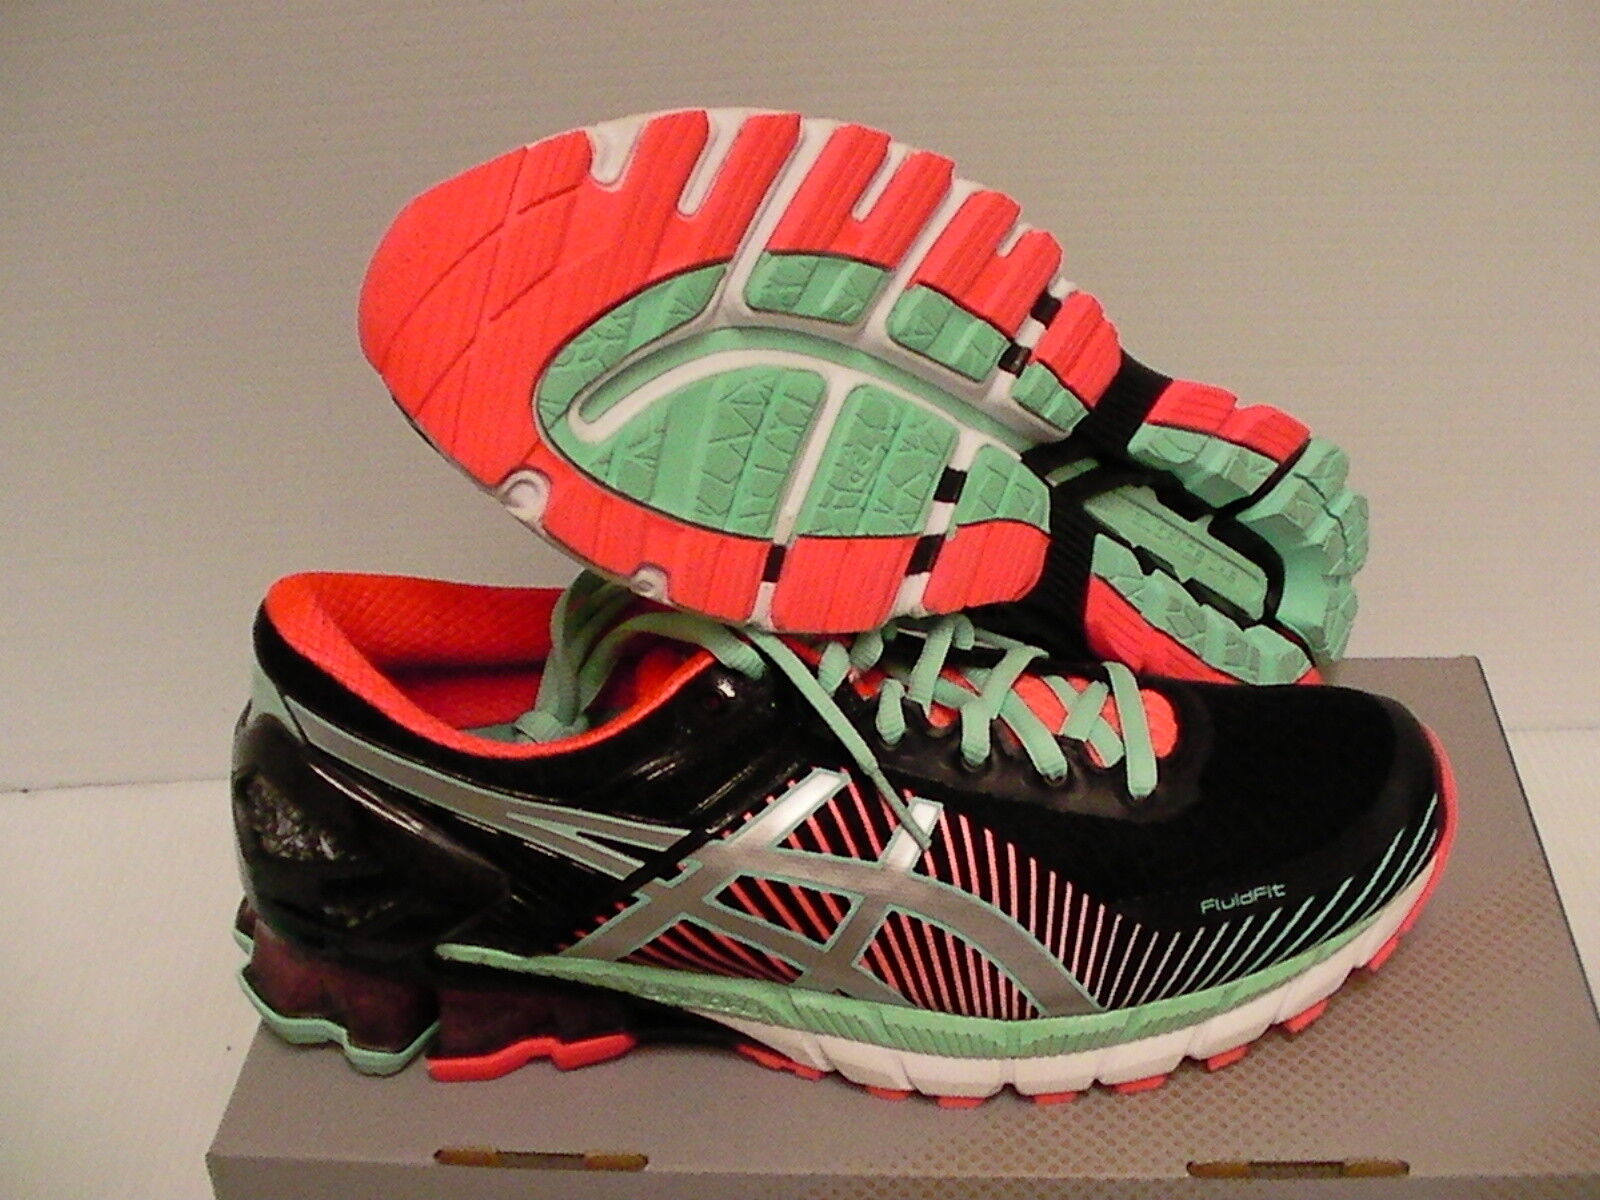 Asics women's running shoes gel kinsei 6 black silver flash coral size 5.5 us